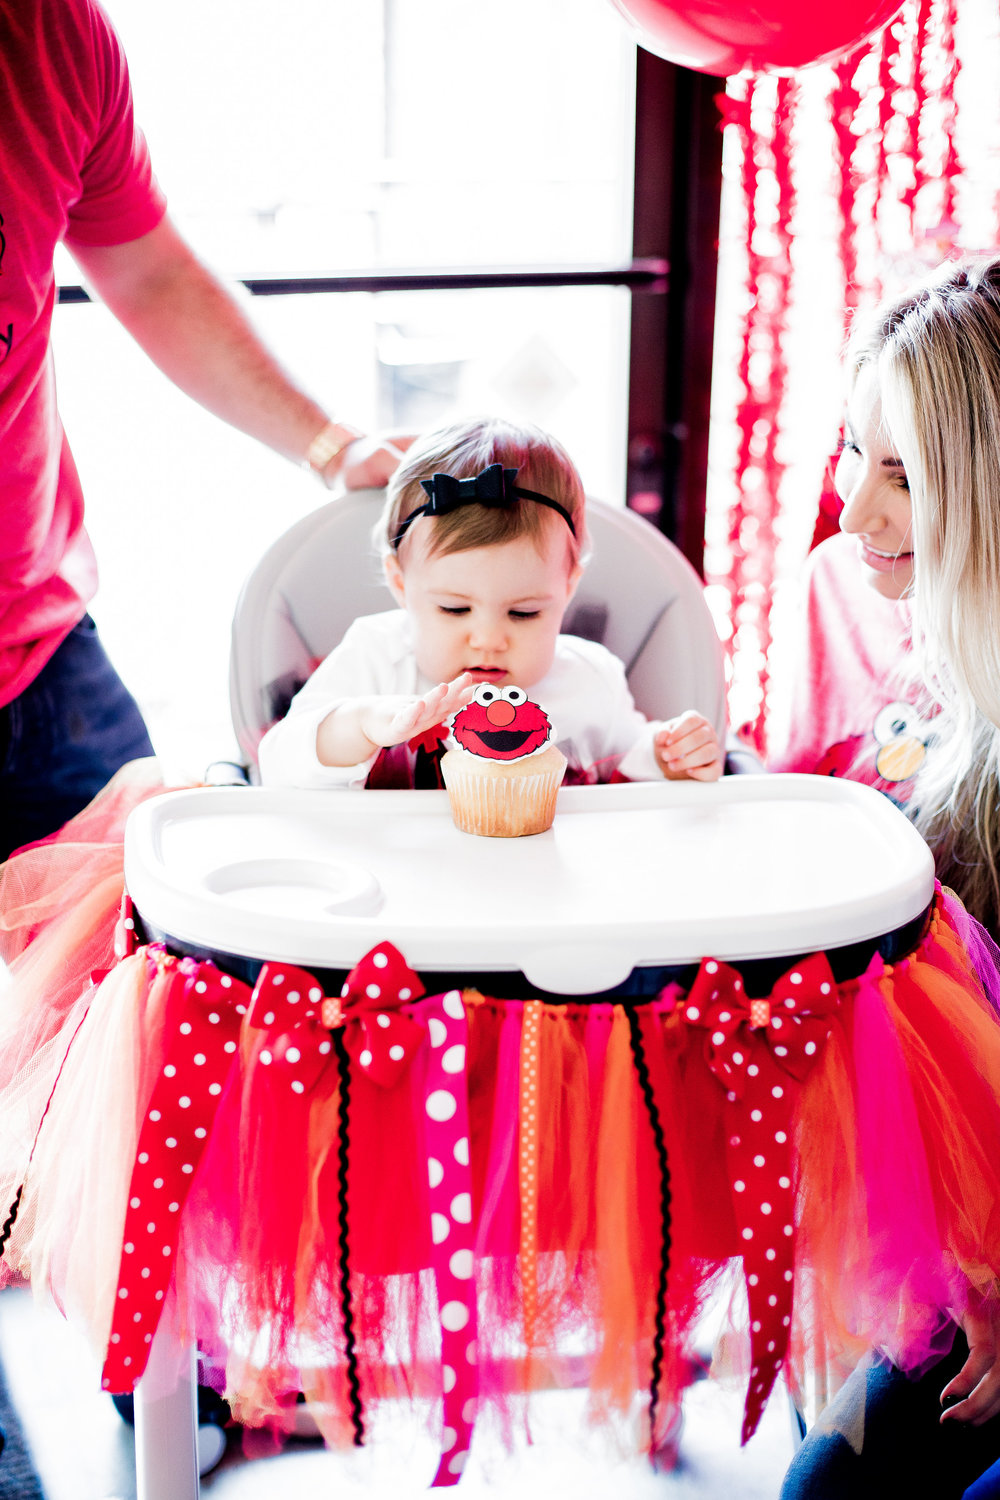 Alexis'_1st_Birthday_04.07.18._-22.jpg